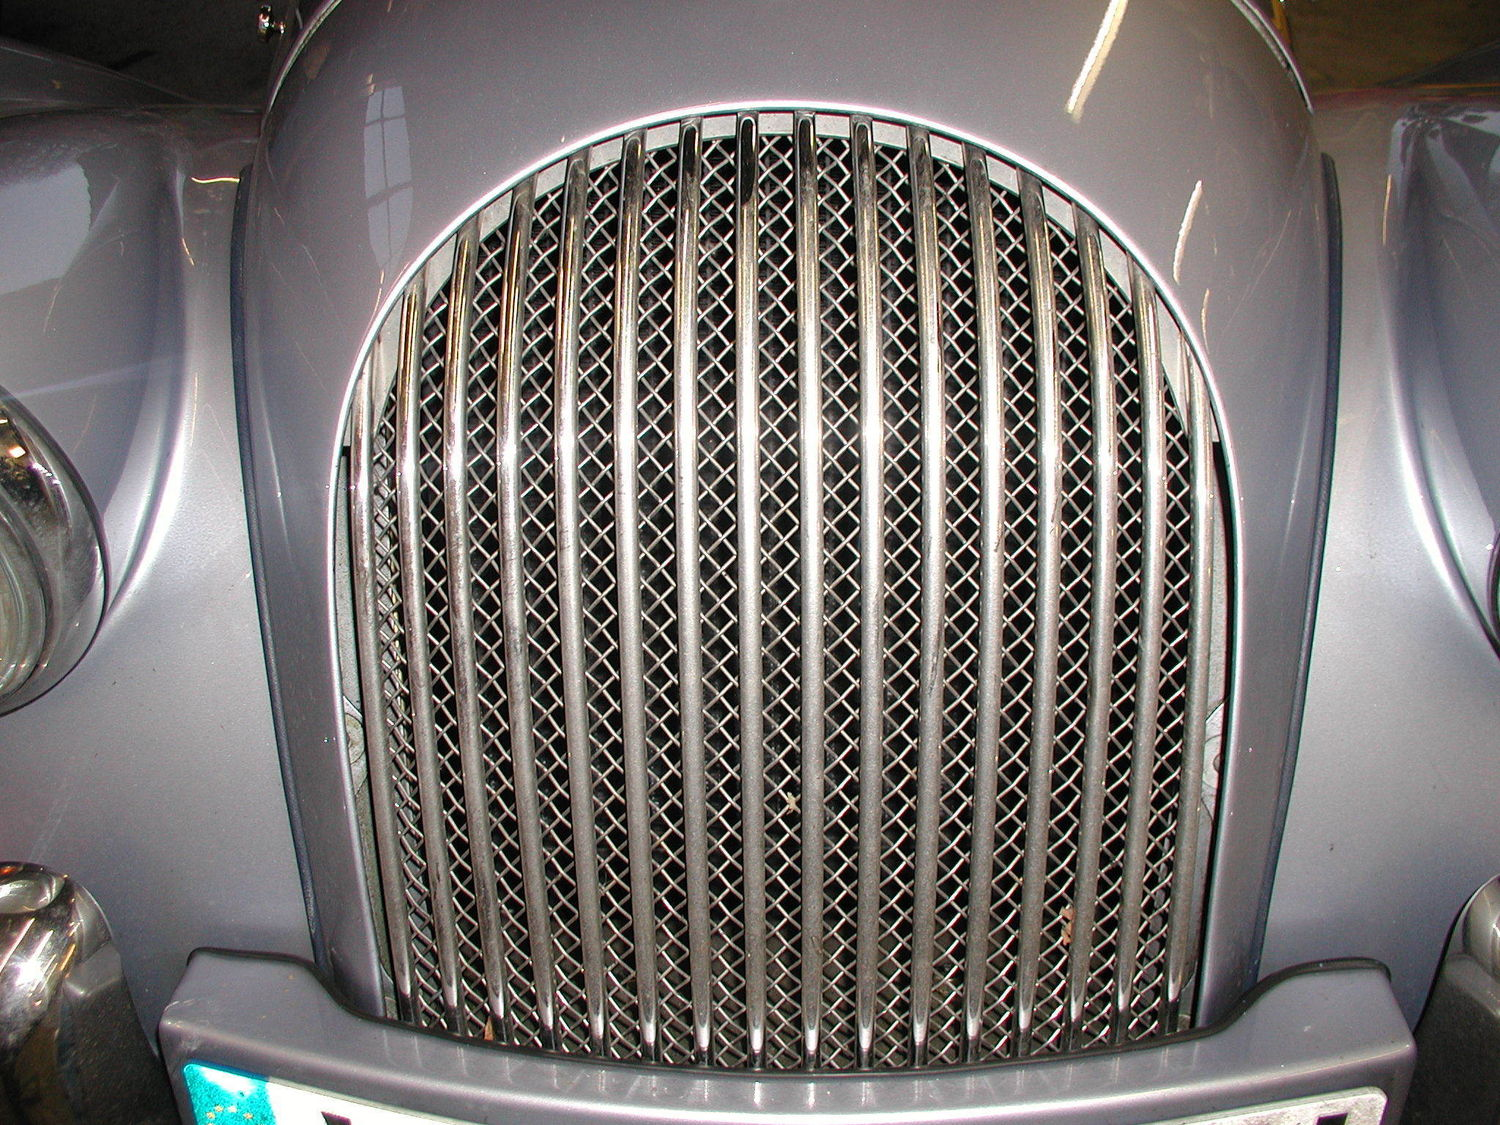 Radiator Grille - Stainless